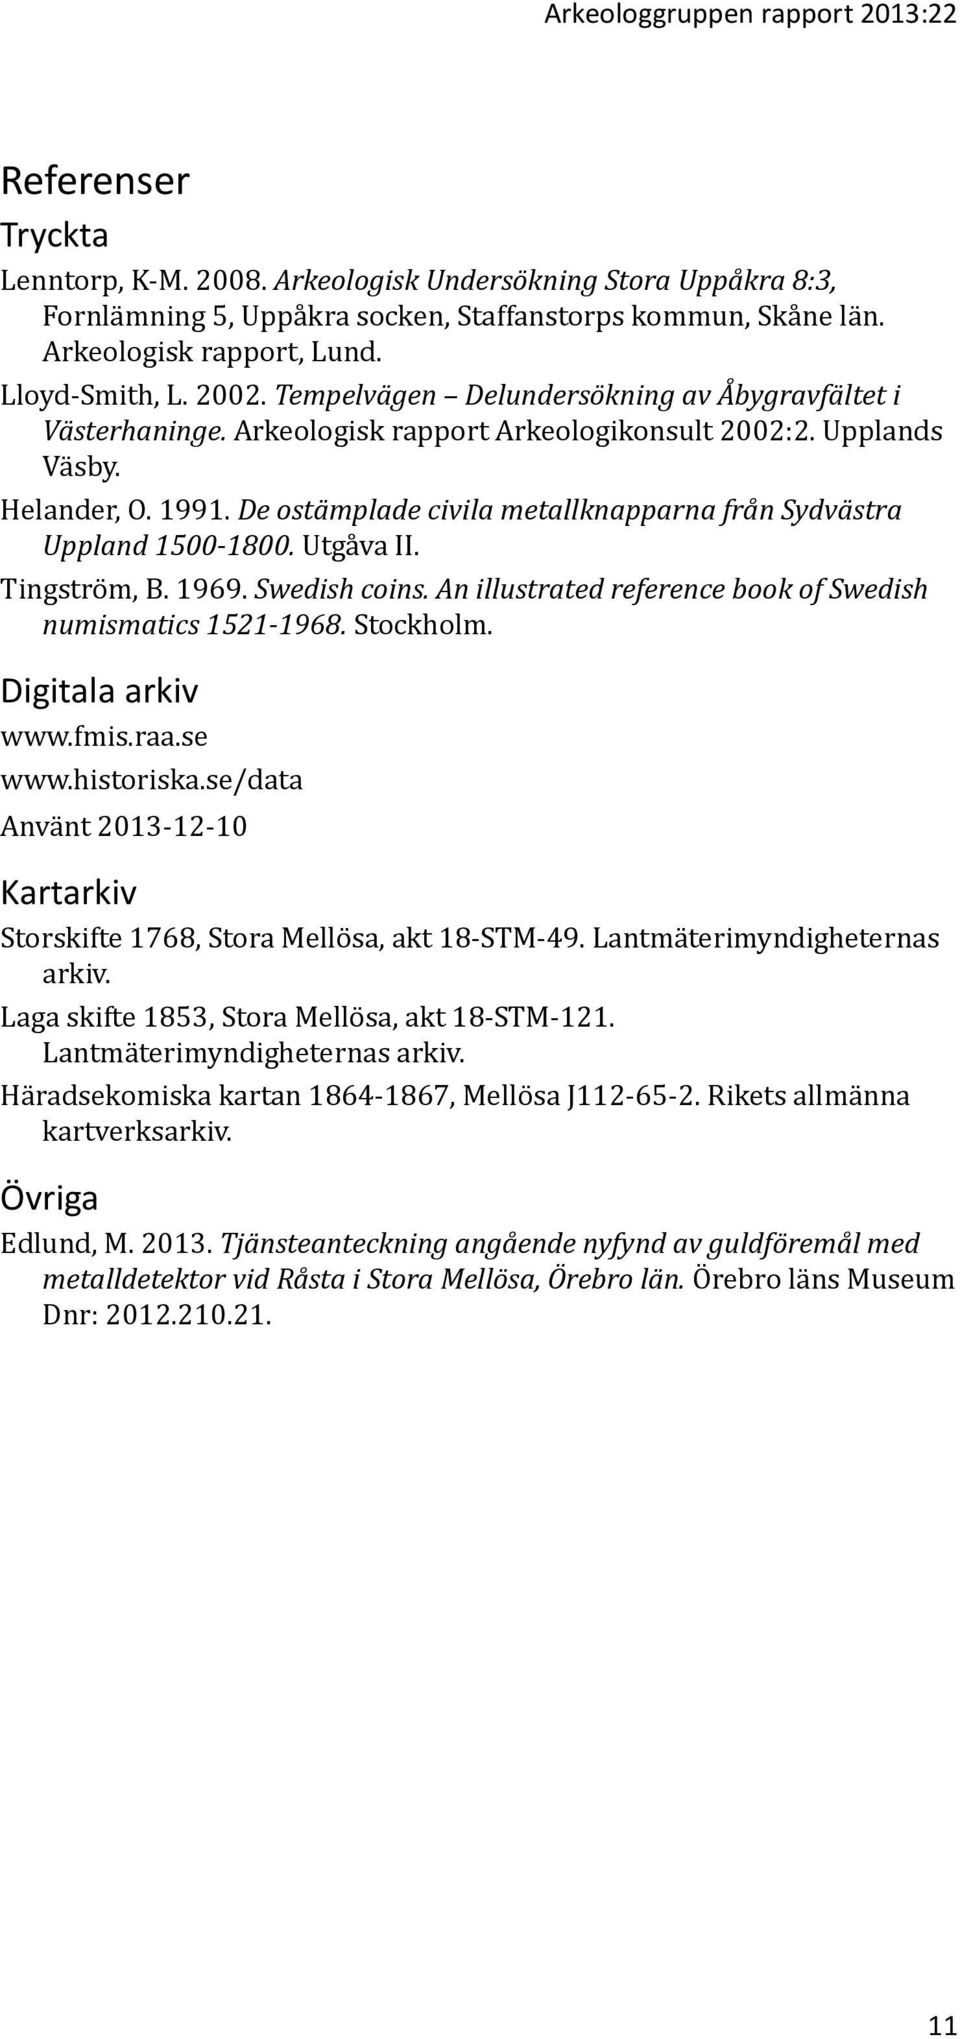 De ostämplade civila metallknapparna från Sydvästra Uppland 1500-1800. Utgåva II. Tingström, B. 1969. Swedish coins. An illustrated reference book of Swedish numismatics 1521-1968. Stockholm.